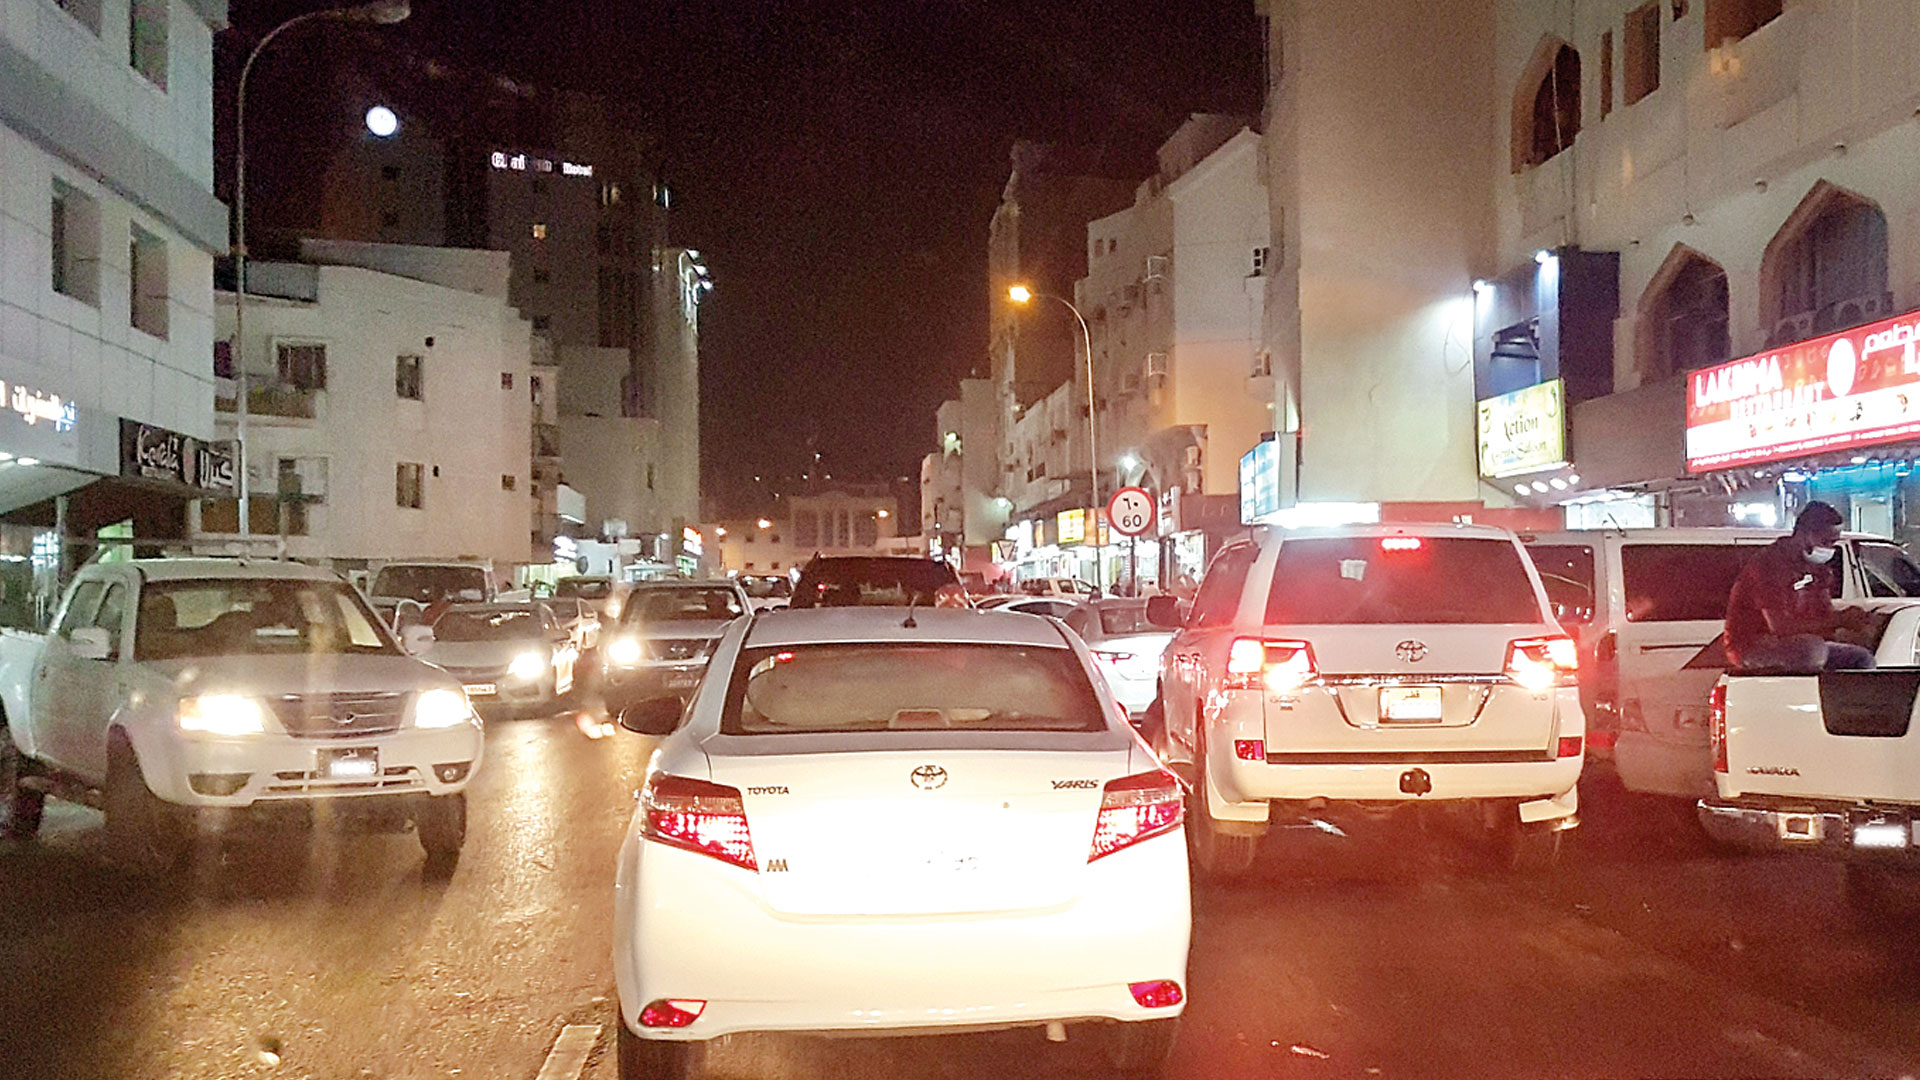 Daily traffic congestion on Najma Street due to hot drinks shops